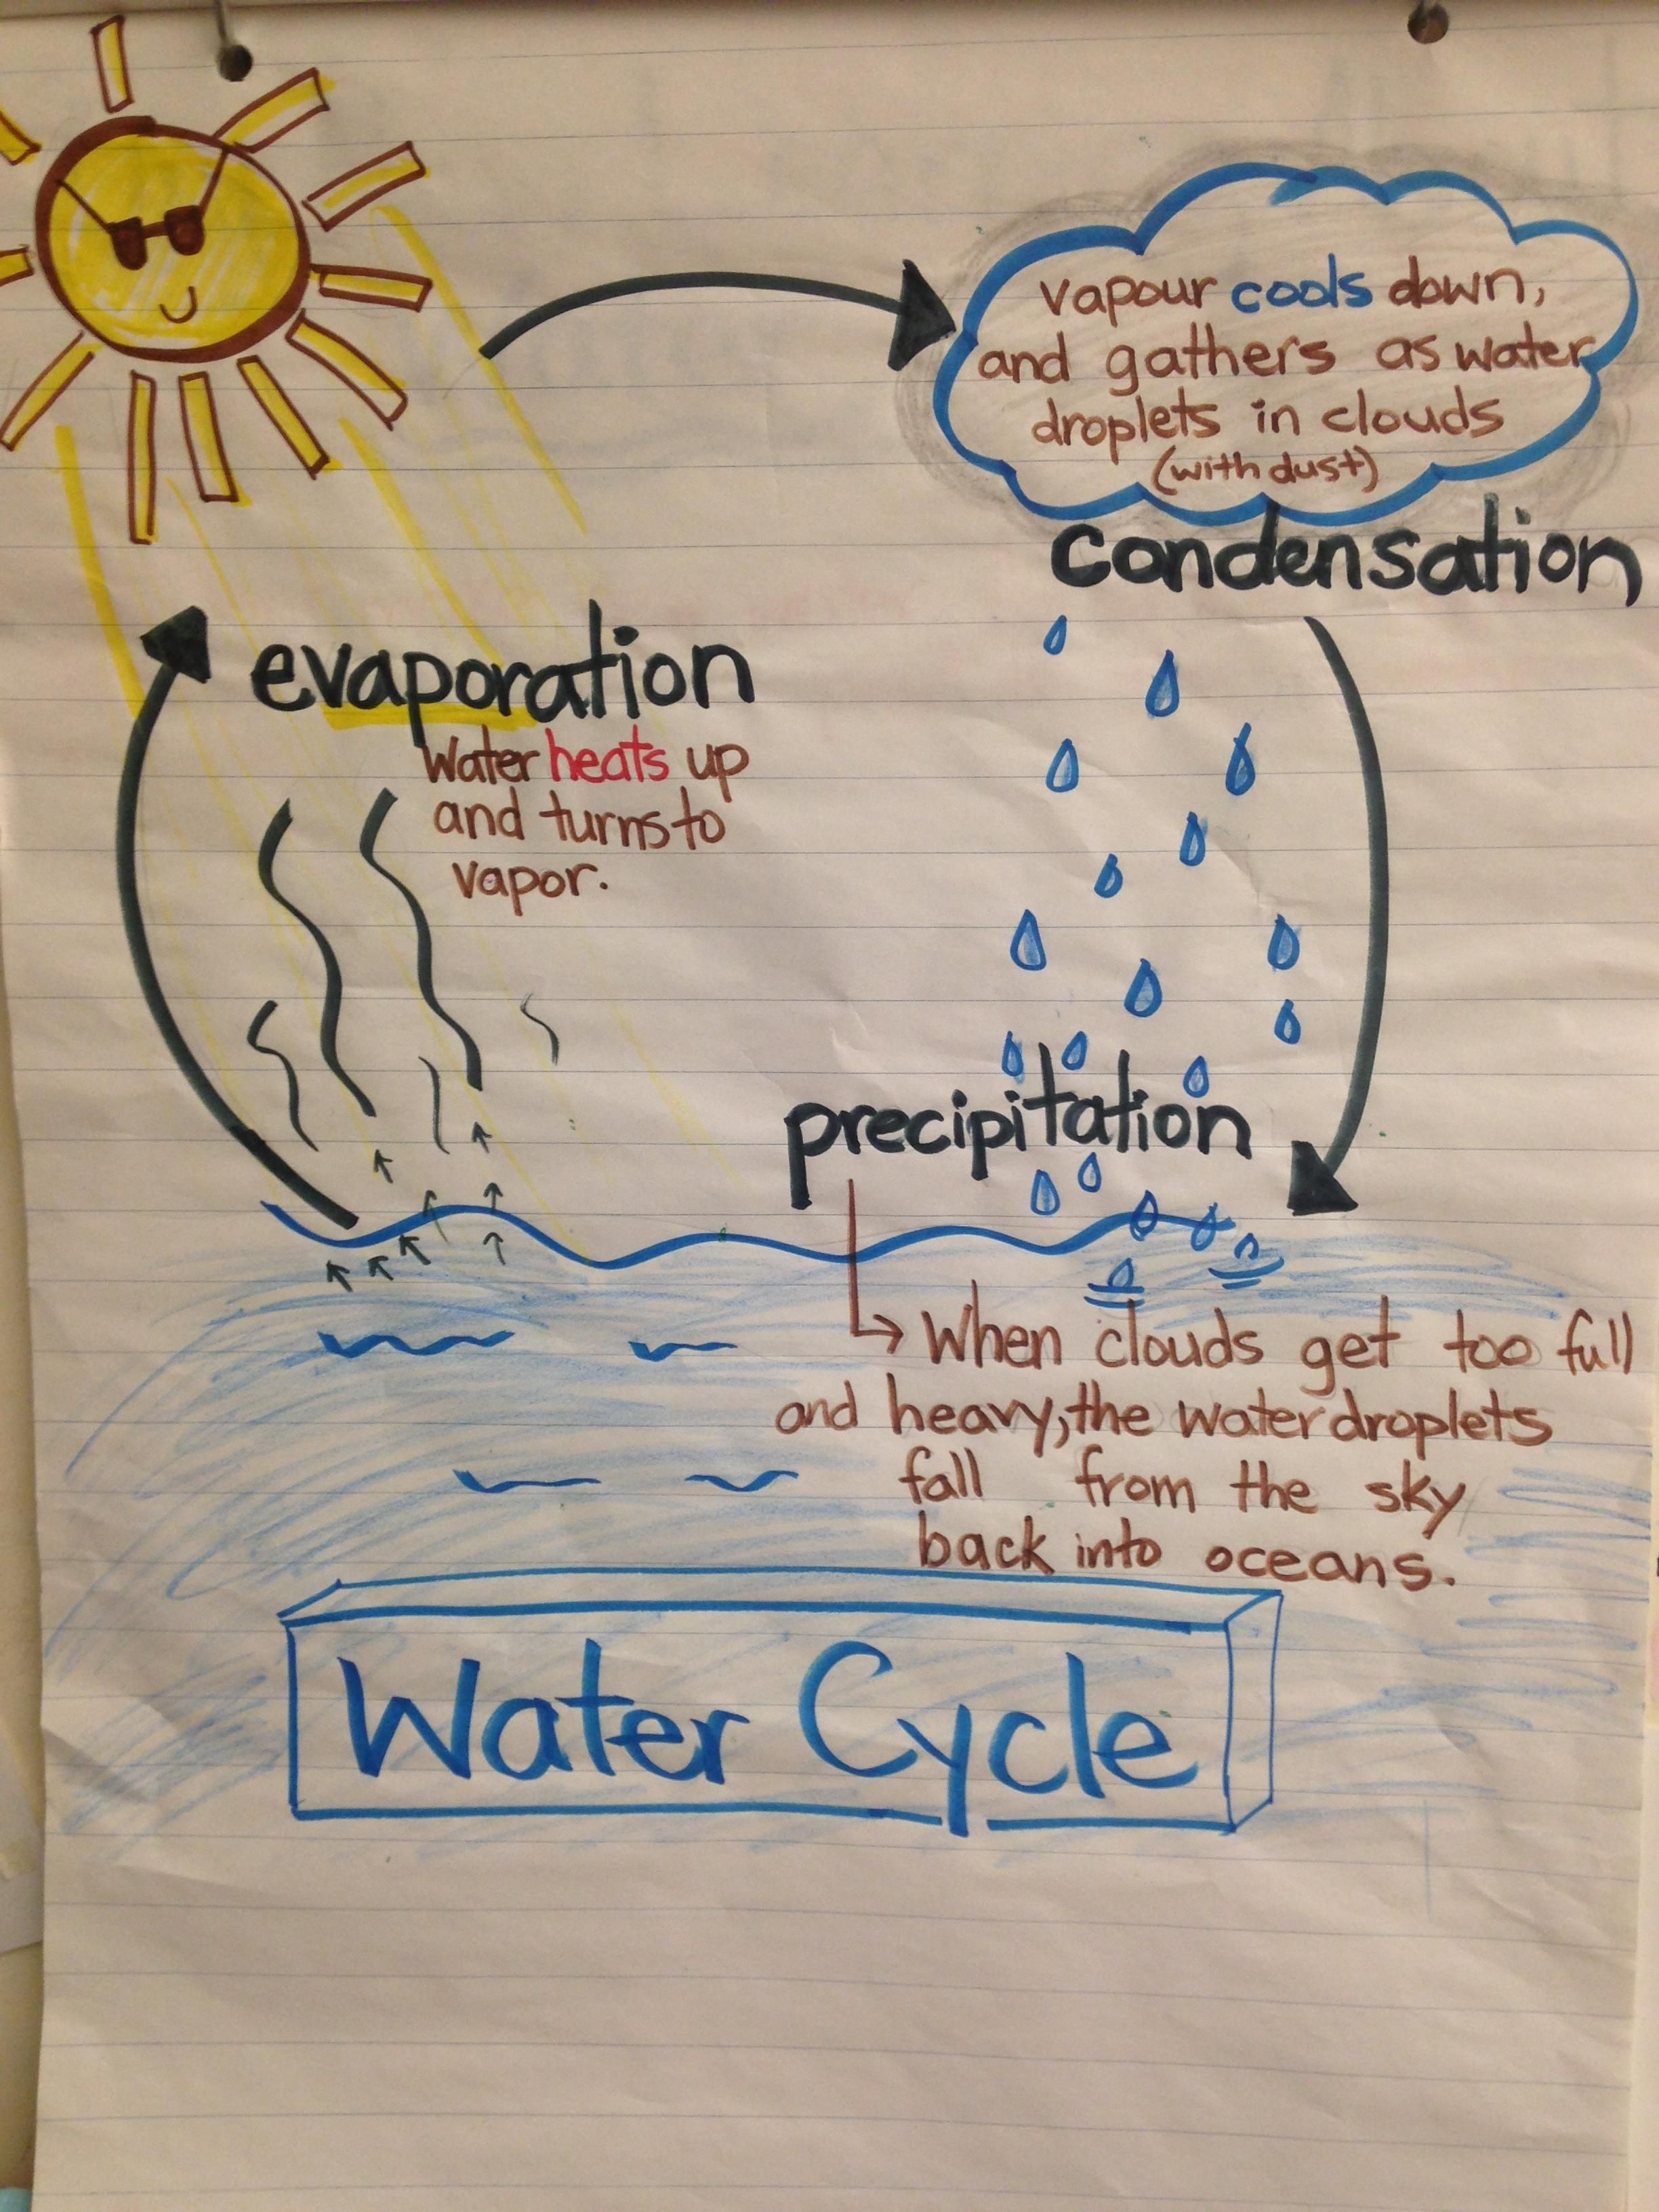 Water Cycle Diagram For 5th Grade